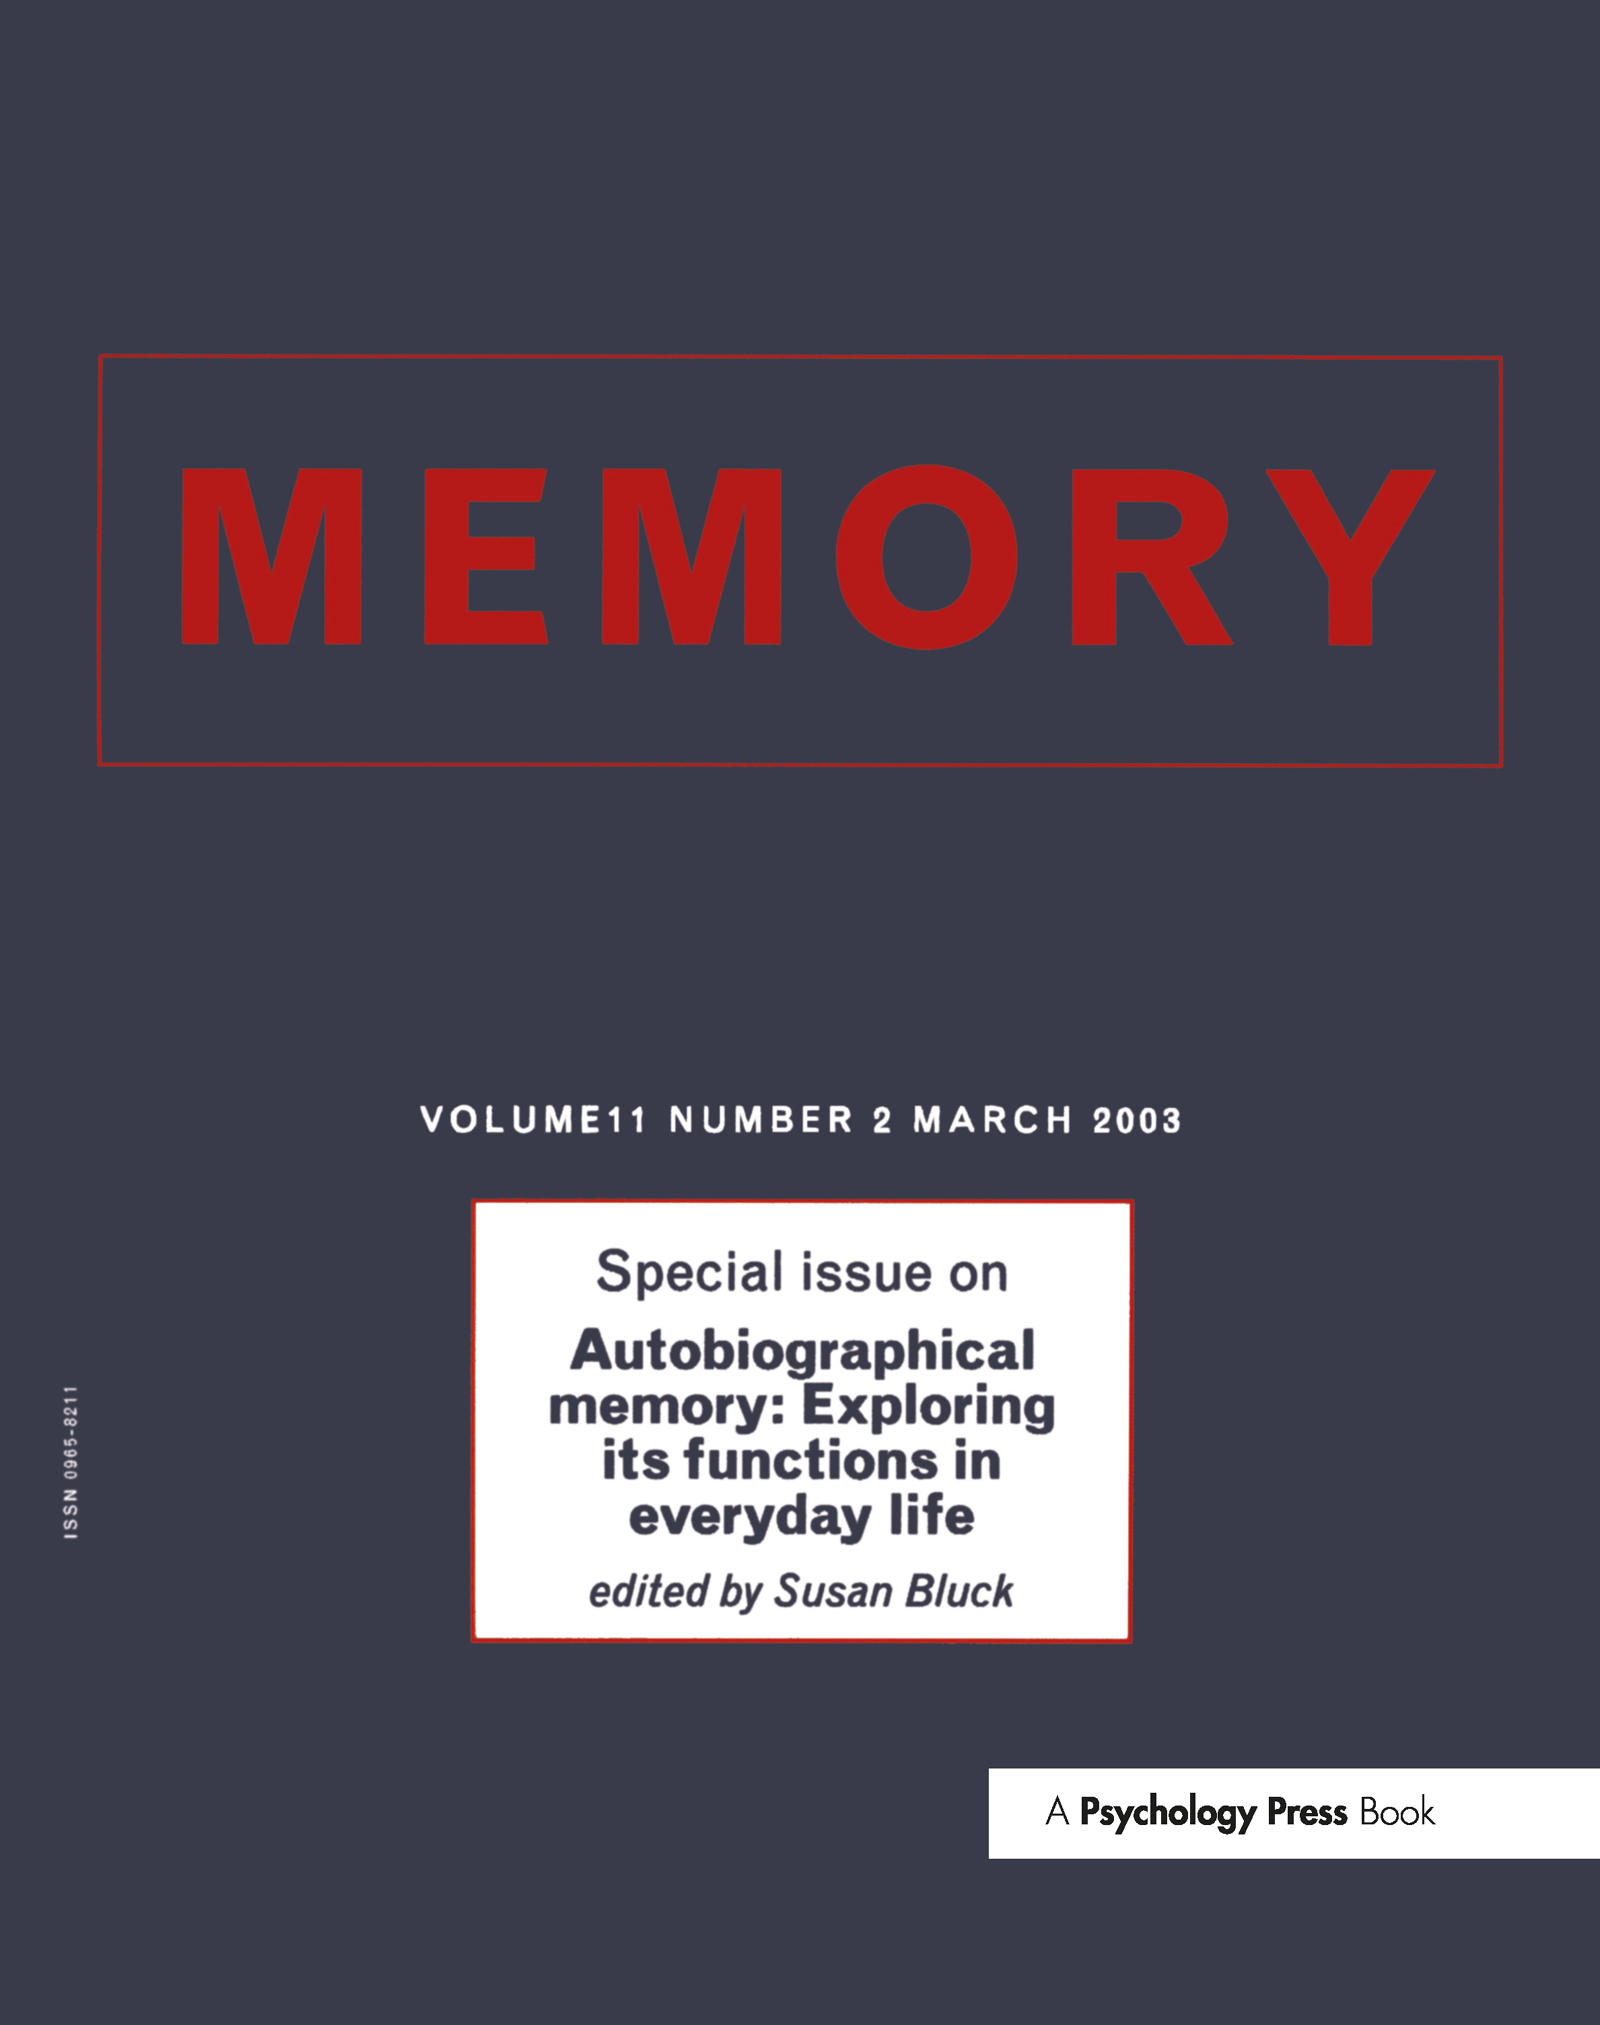 Autobiographical Memory: Exploring its Functions in Everyday Life: A Special Issue of Memory book cover